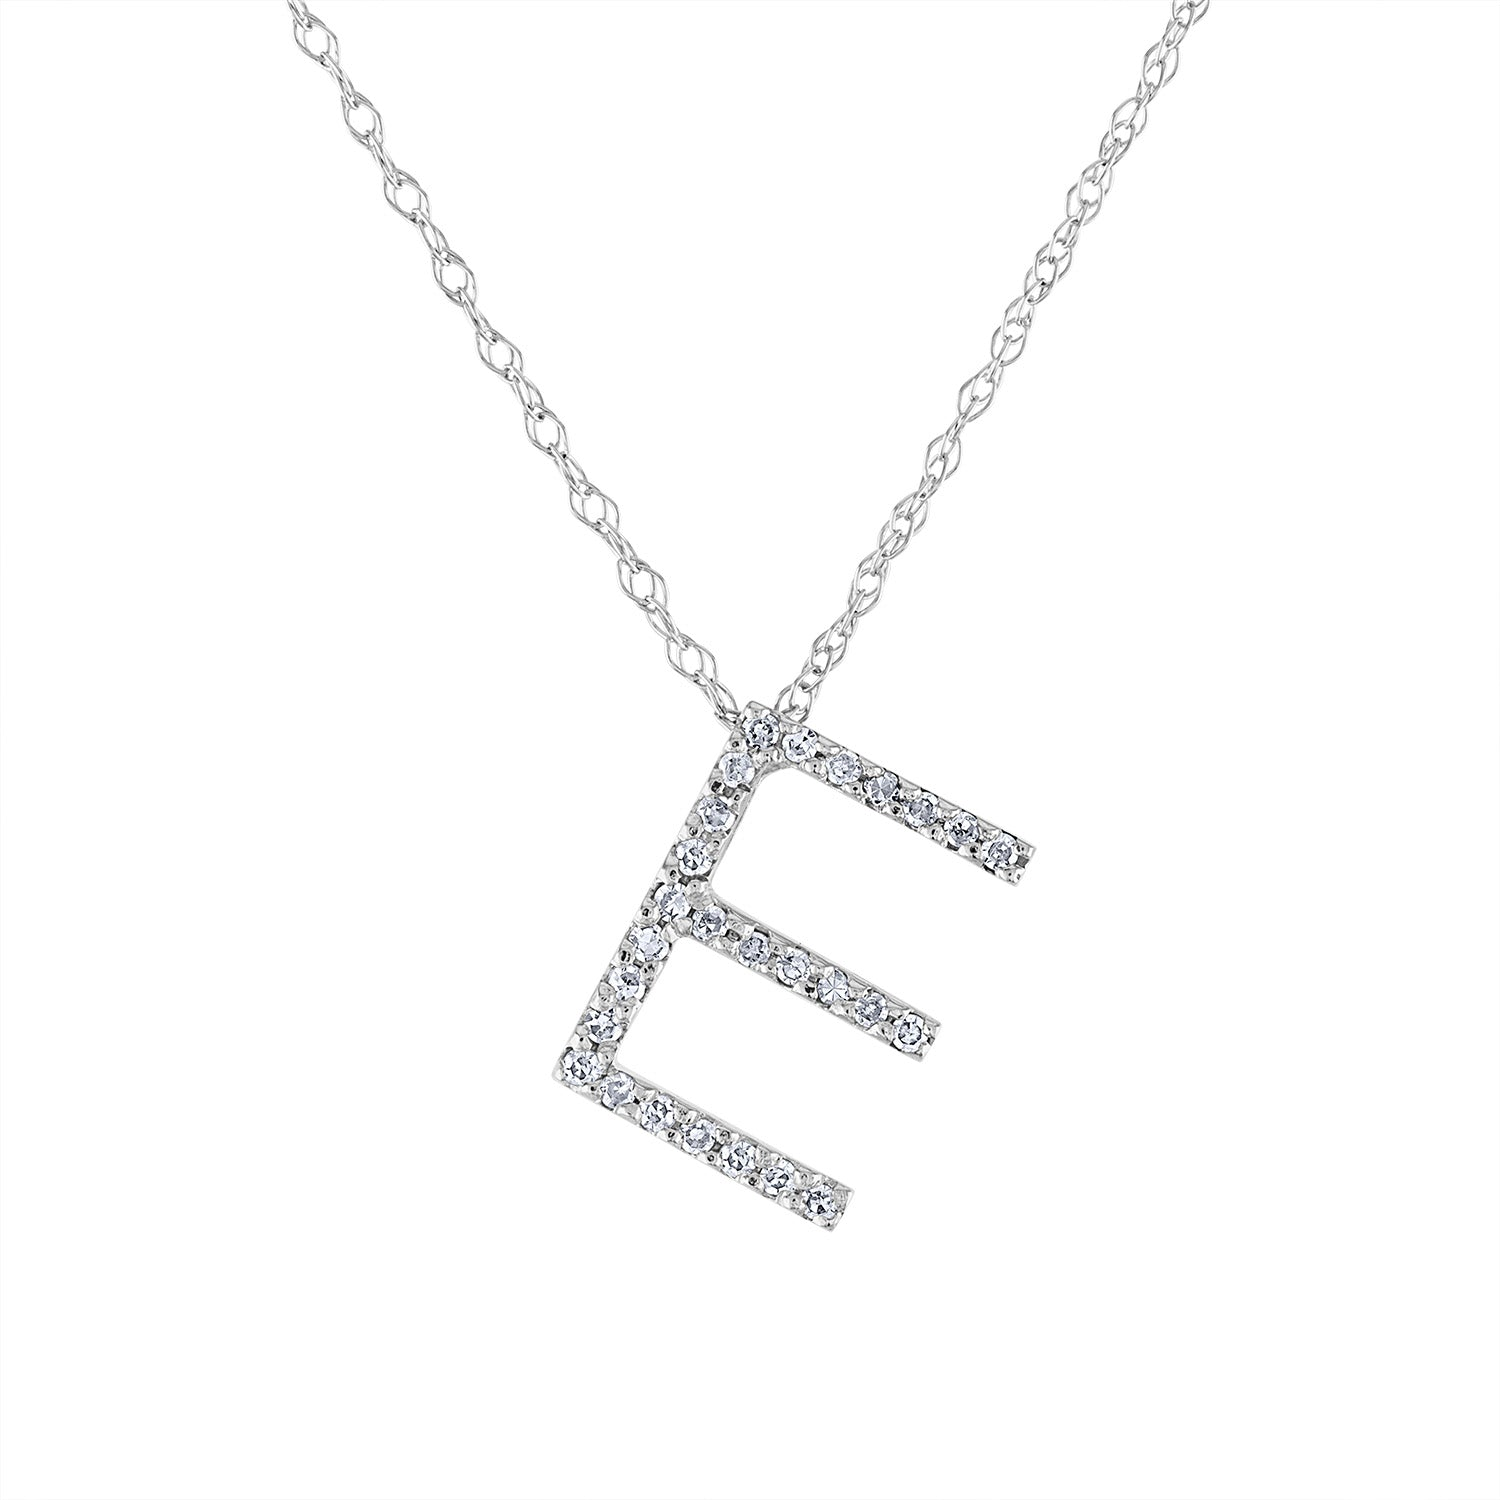 14k White Gold diamond initial E necklace